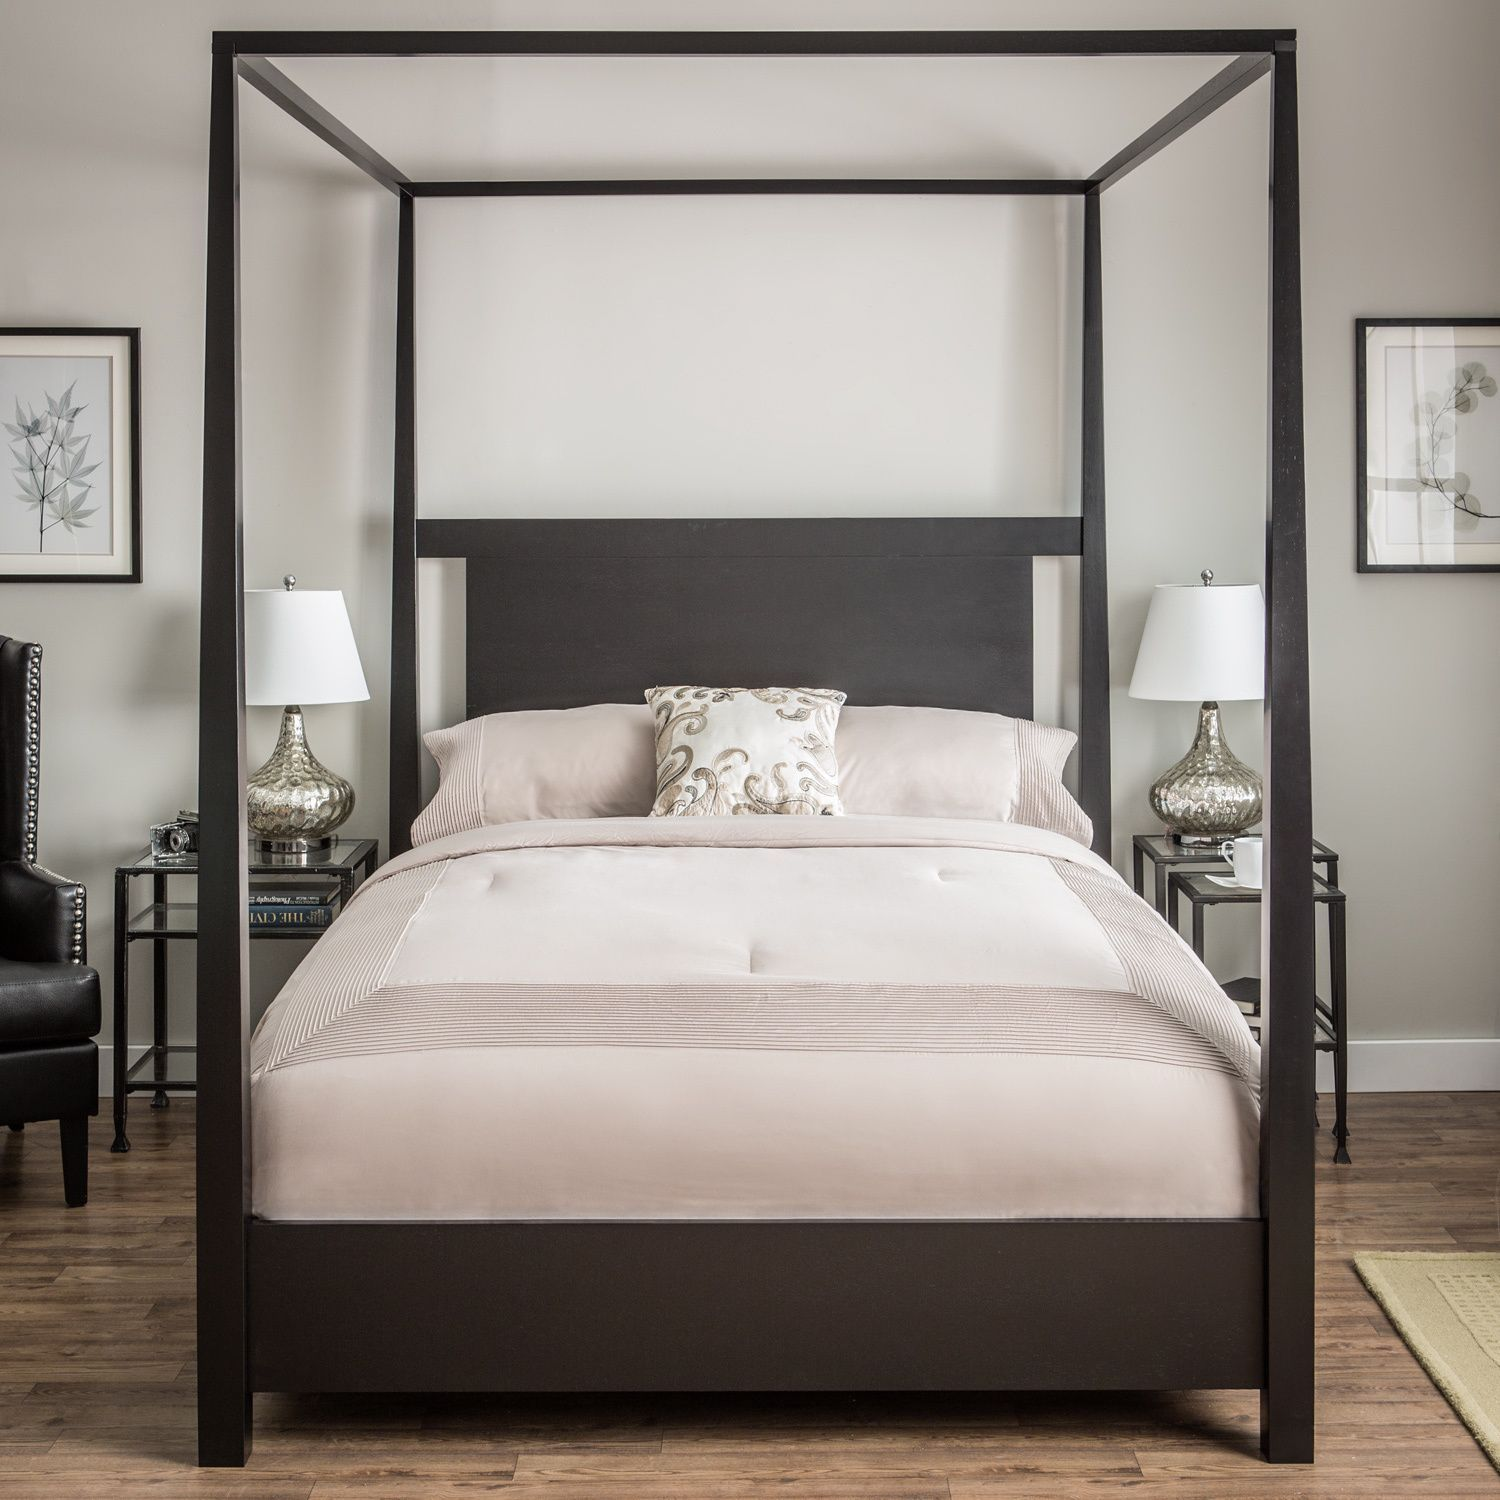 Napa queen size black canopy bed free shipping today overstock com - Shop For Napa Canopy Full Bed Get Free Shipping At Your Online Furniture Outlet Store Get In Rewards With Club O